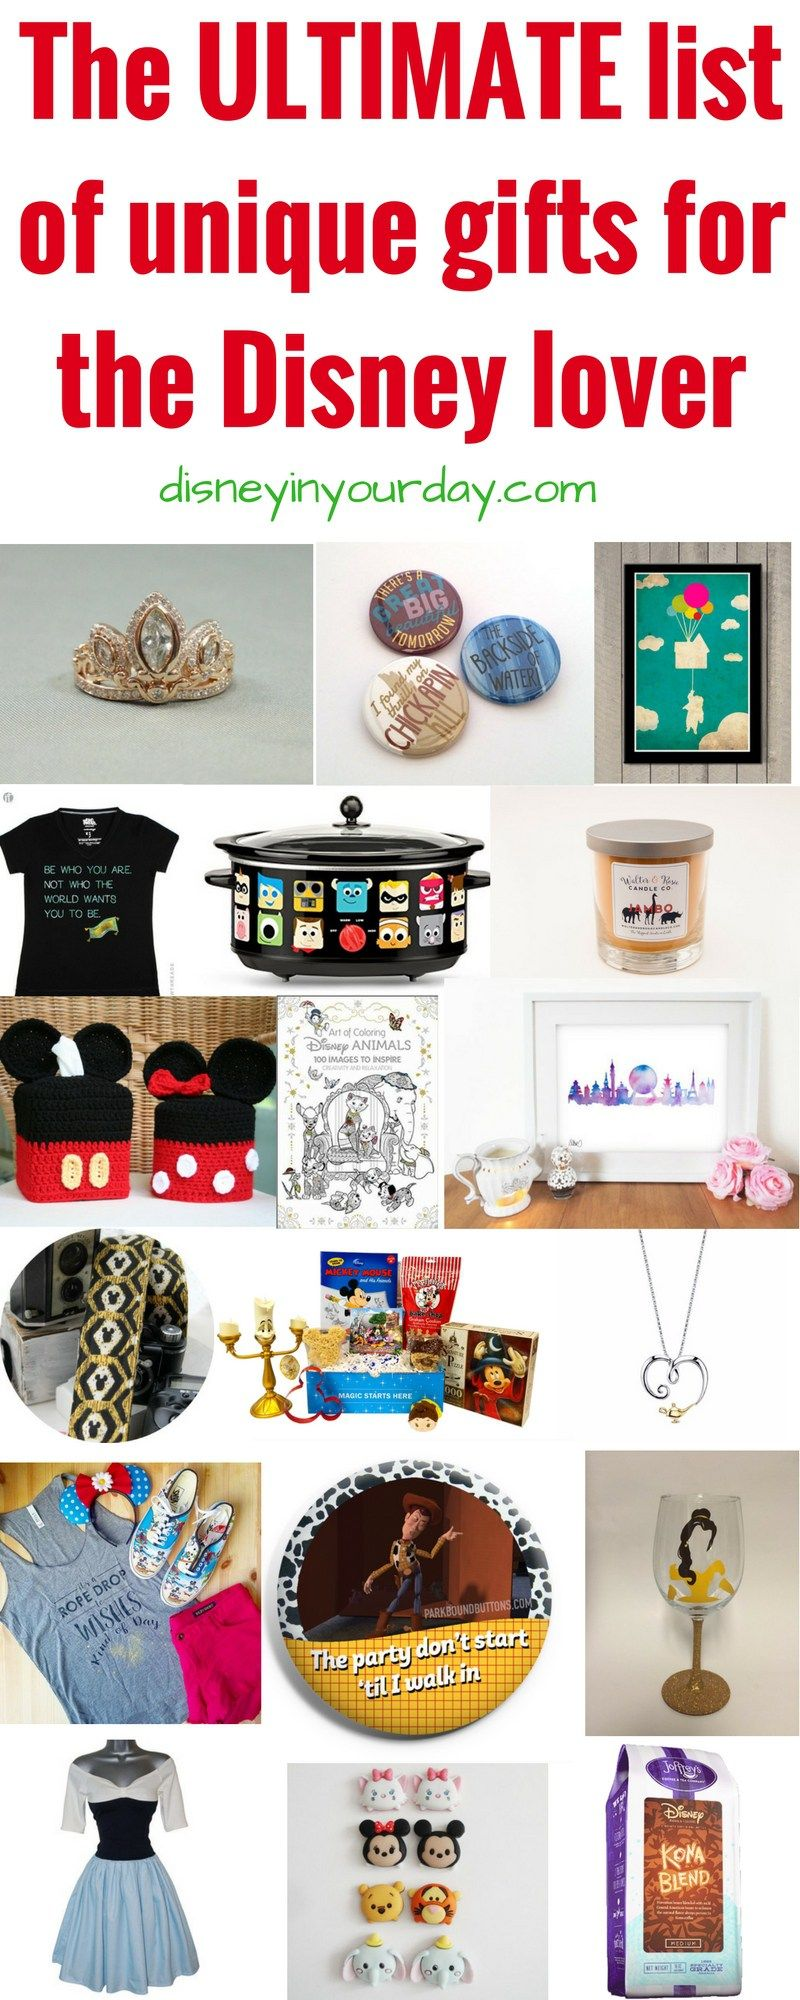 Unique gifts for Disney lovers - Disney in your Day  sc 1 st  Pinterest & Unique gifts for the Disney Lover | Disney Holiday Decorating Ideas ...